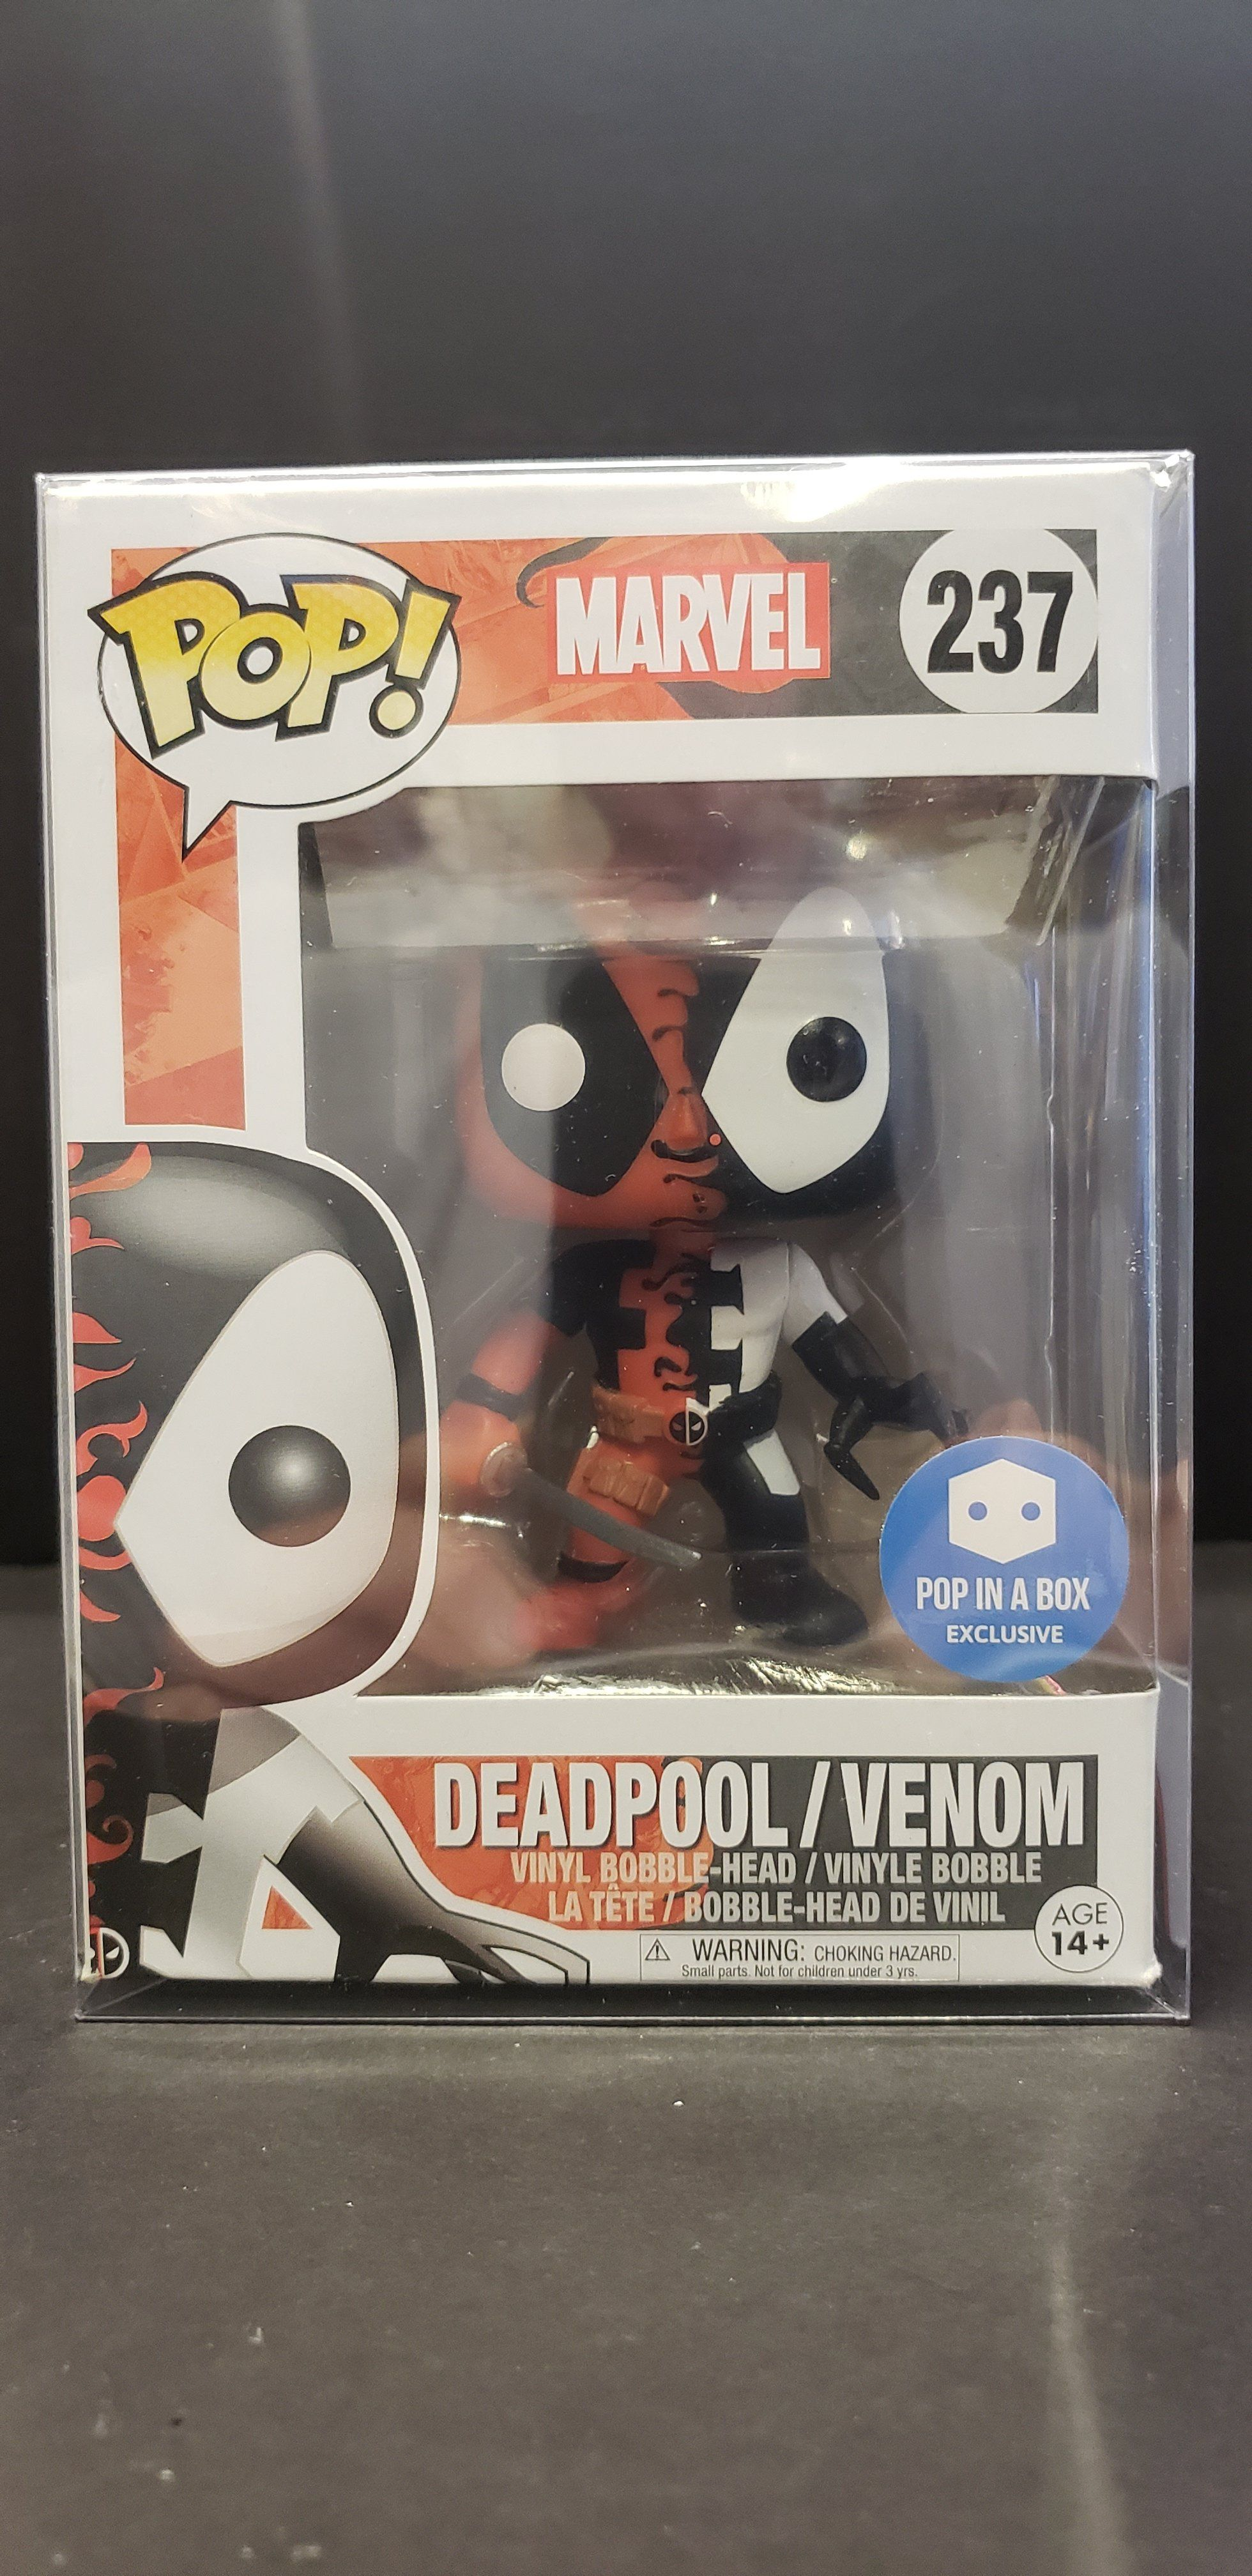 29aaa96e2ec Funko POP! Marvel  237 Deadpool Venom (Pop in a Box Exclusive ...